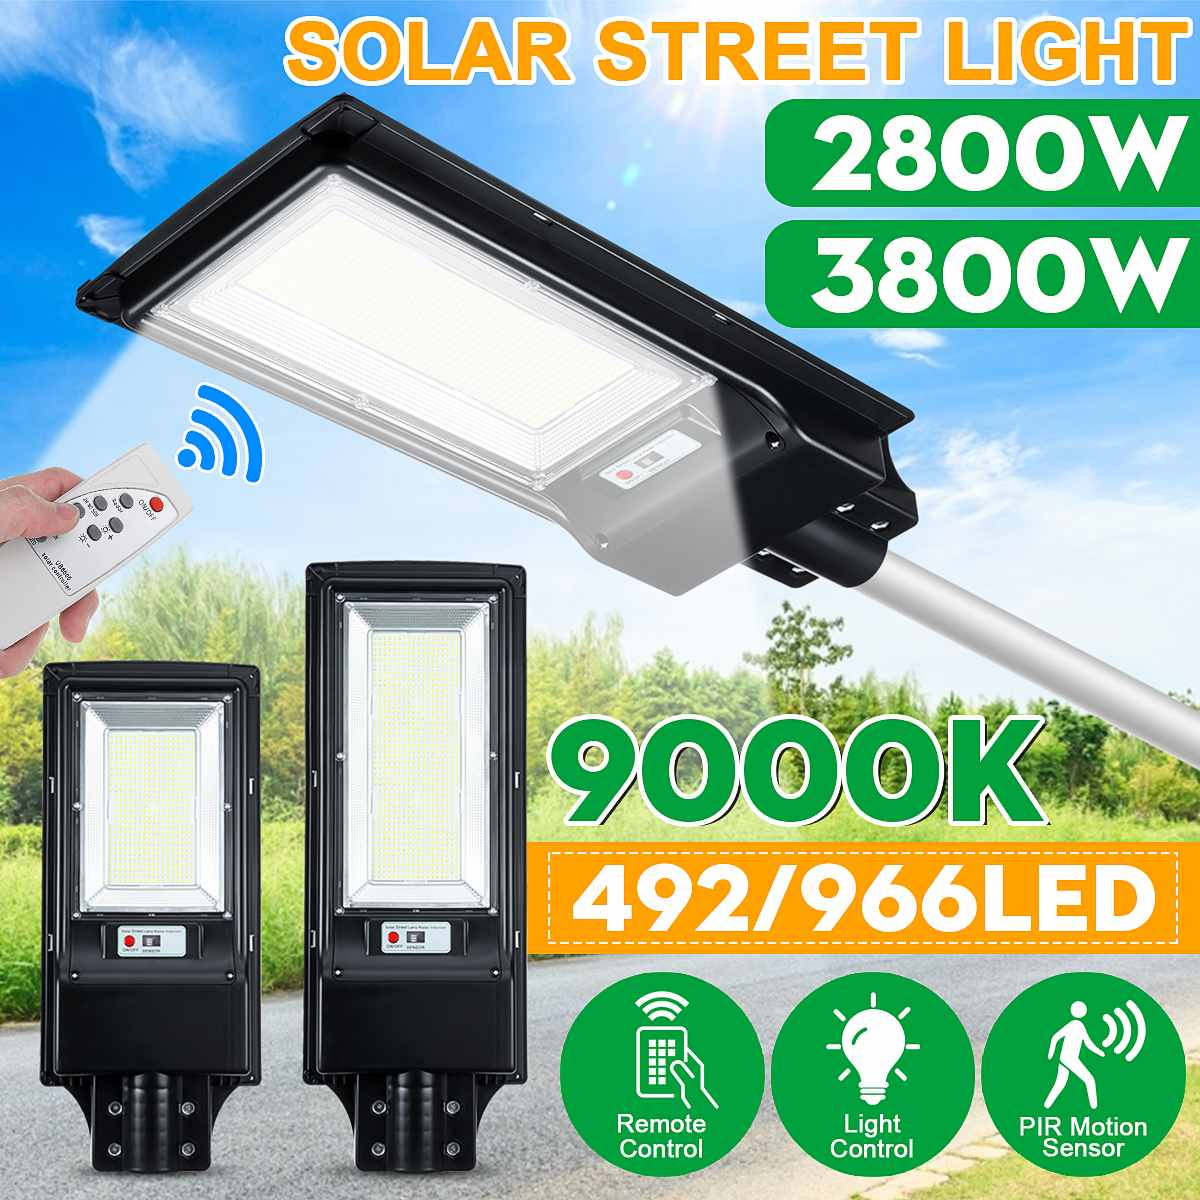 2800W 3800W LED Solar Street Light With/no Remote Control Radar Sensor Outdoor Garden Wall Lamp Industrial Security Lighting